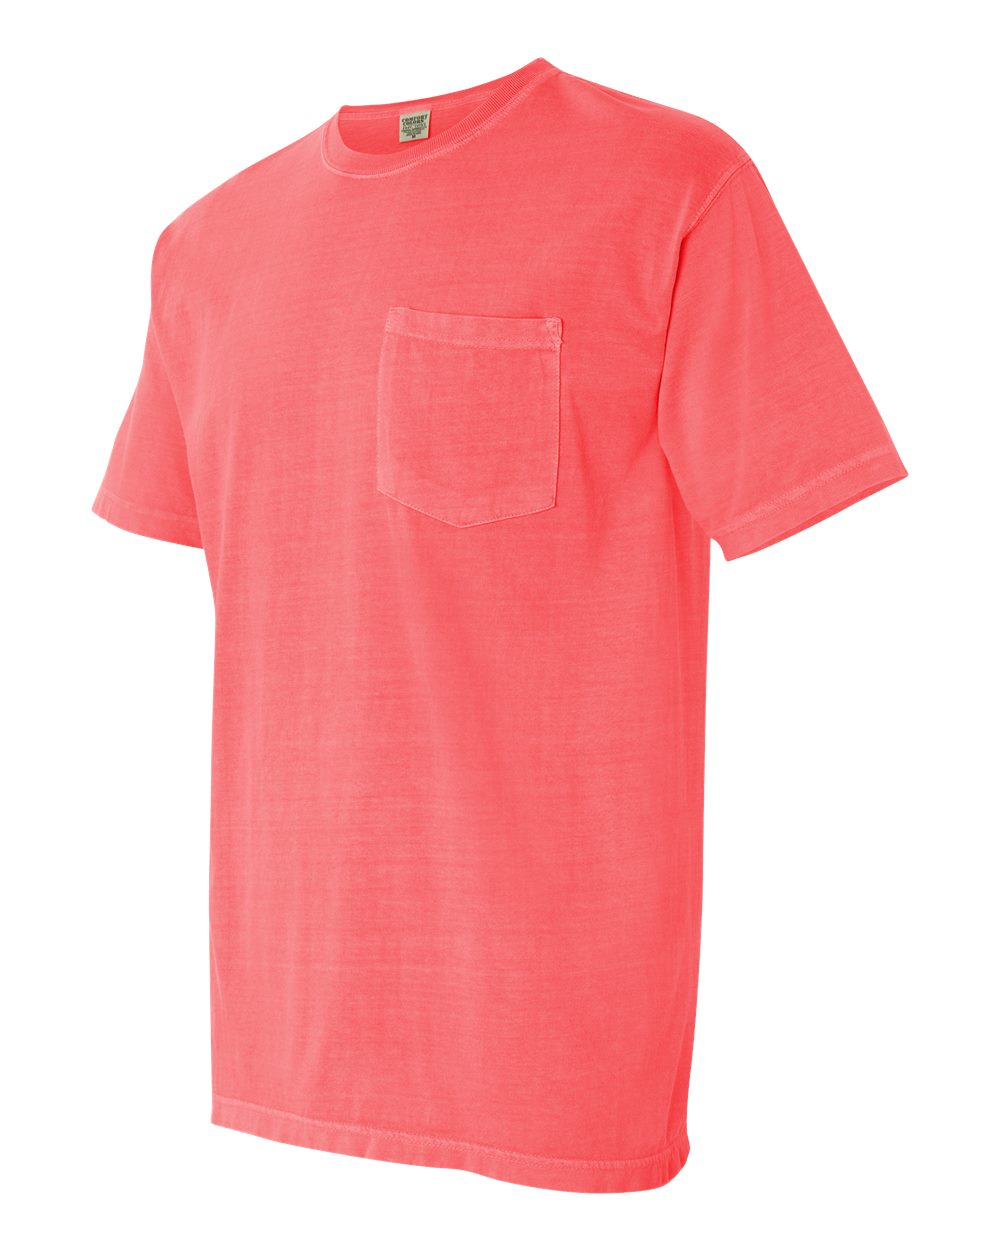 Comfort-Colors-Men-039-s-6-1-oz-Garment-Dyed-Pocket-T-Shirt-6030CC-S-3XL thumbnail 98